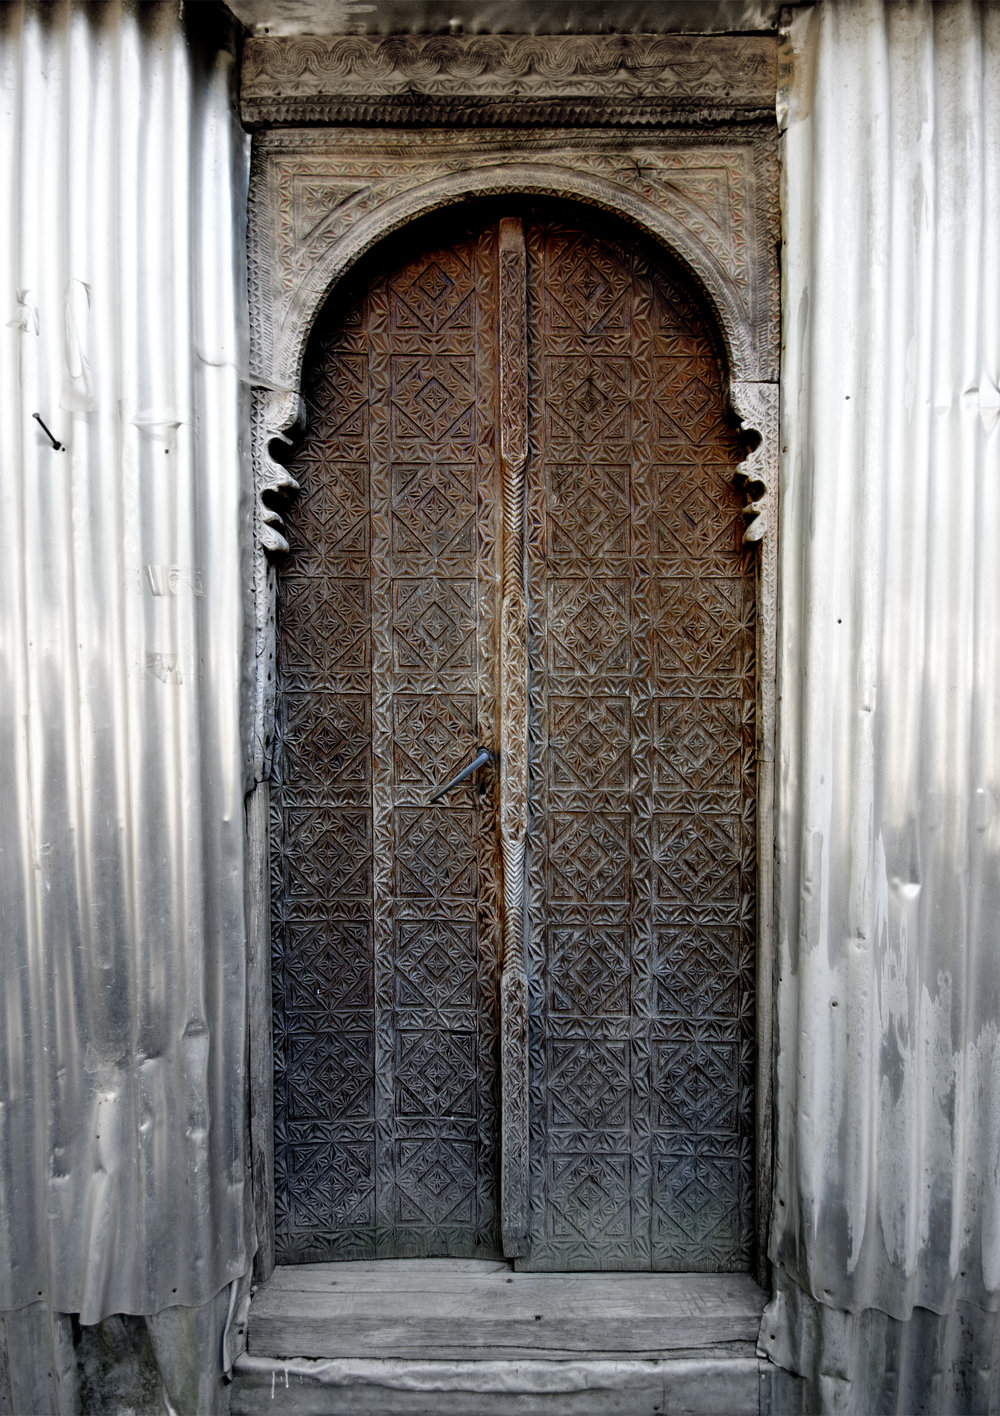 Akho ( ახო) Village Mosque Door Detail U0026nbsp;© All Images Copyright Wooden  Mosques